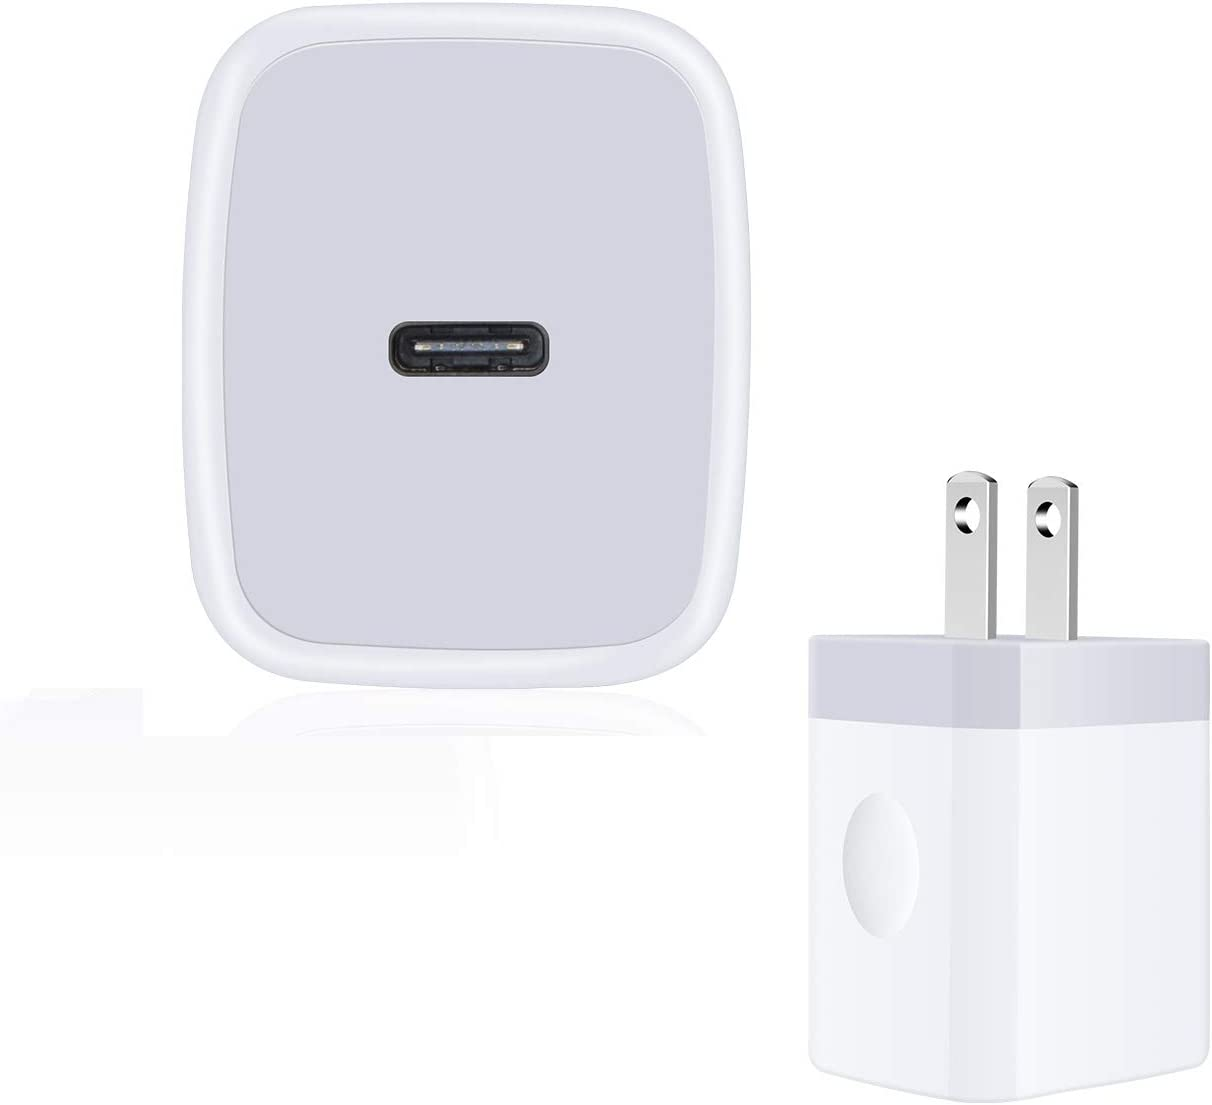 iPhone 12 Pro Max Charger Block Fast Charging, 18W Travel Power Adapter Single Port Wall Charger Plug PD Fast Charger Cube QC 3.0 USB C Charger Compatible for iPhone 12,12 Mini,12 Pro,11 Pro Max, SE